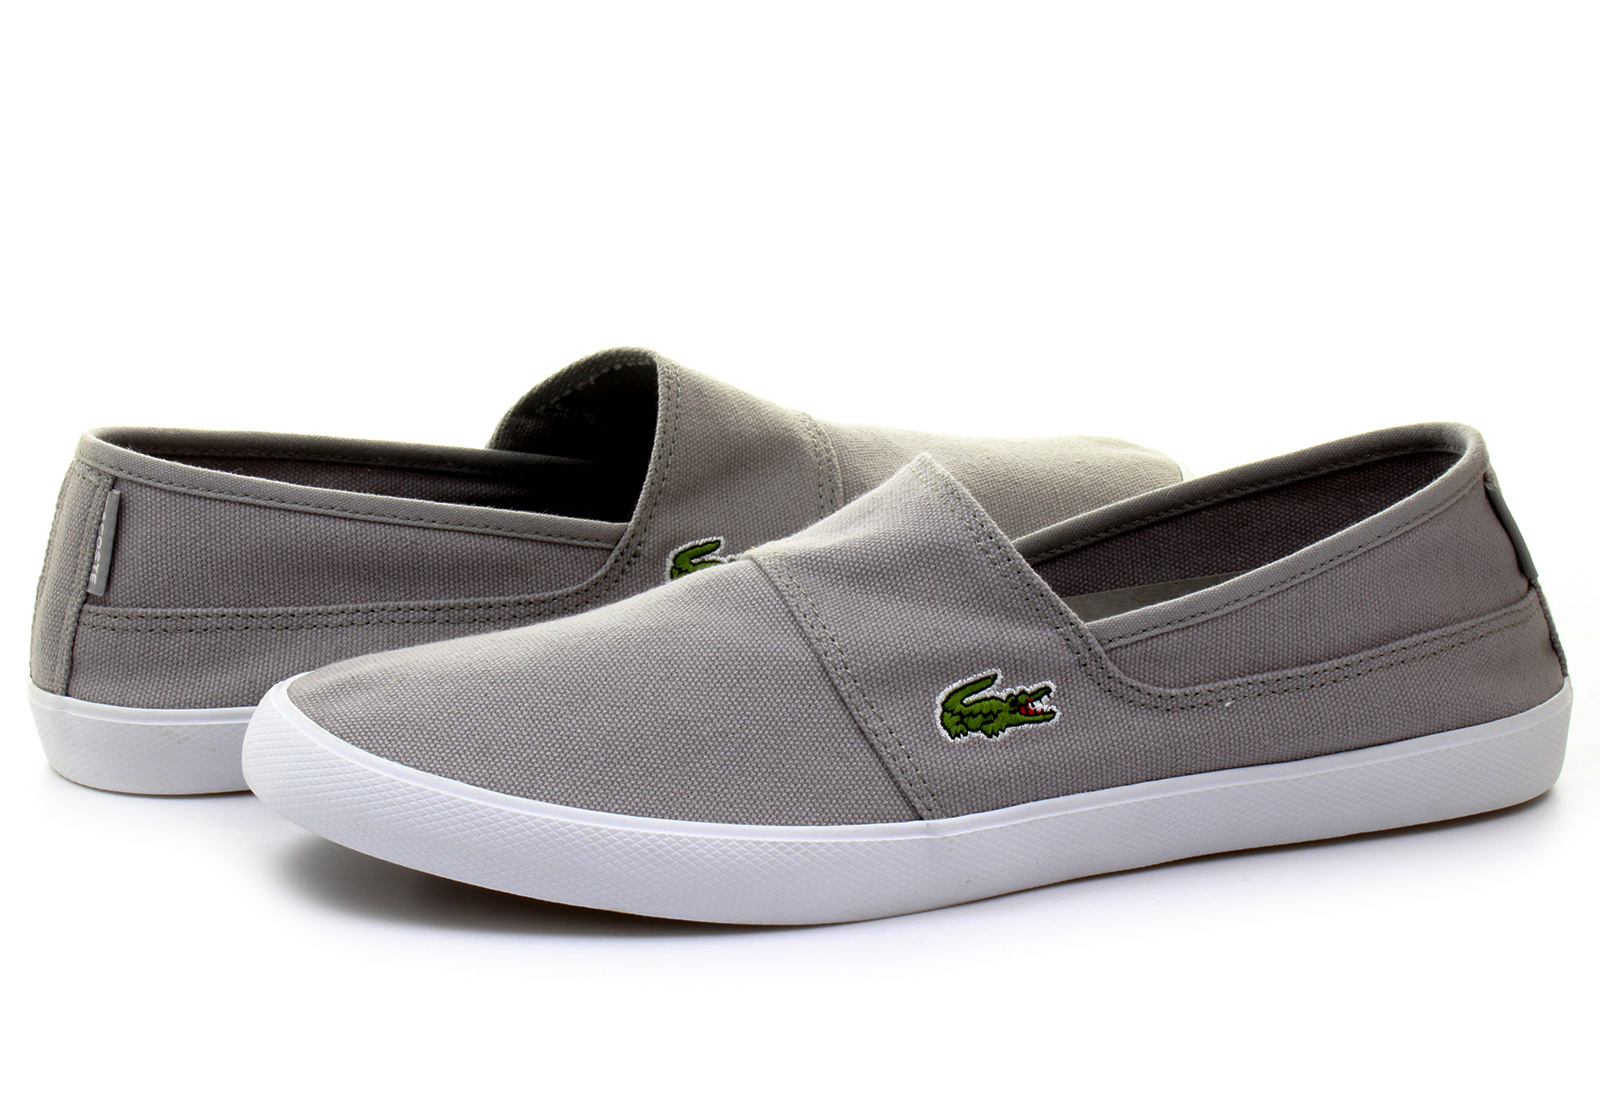 Lacoste Slip On Shoes For Men